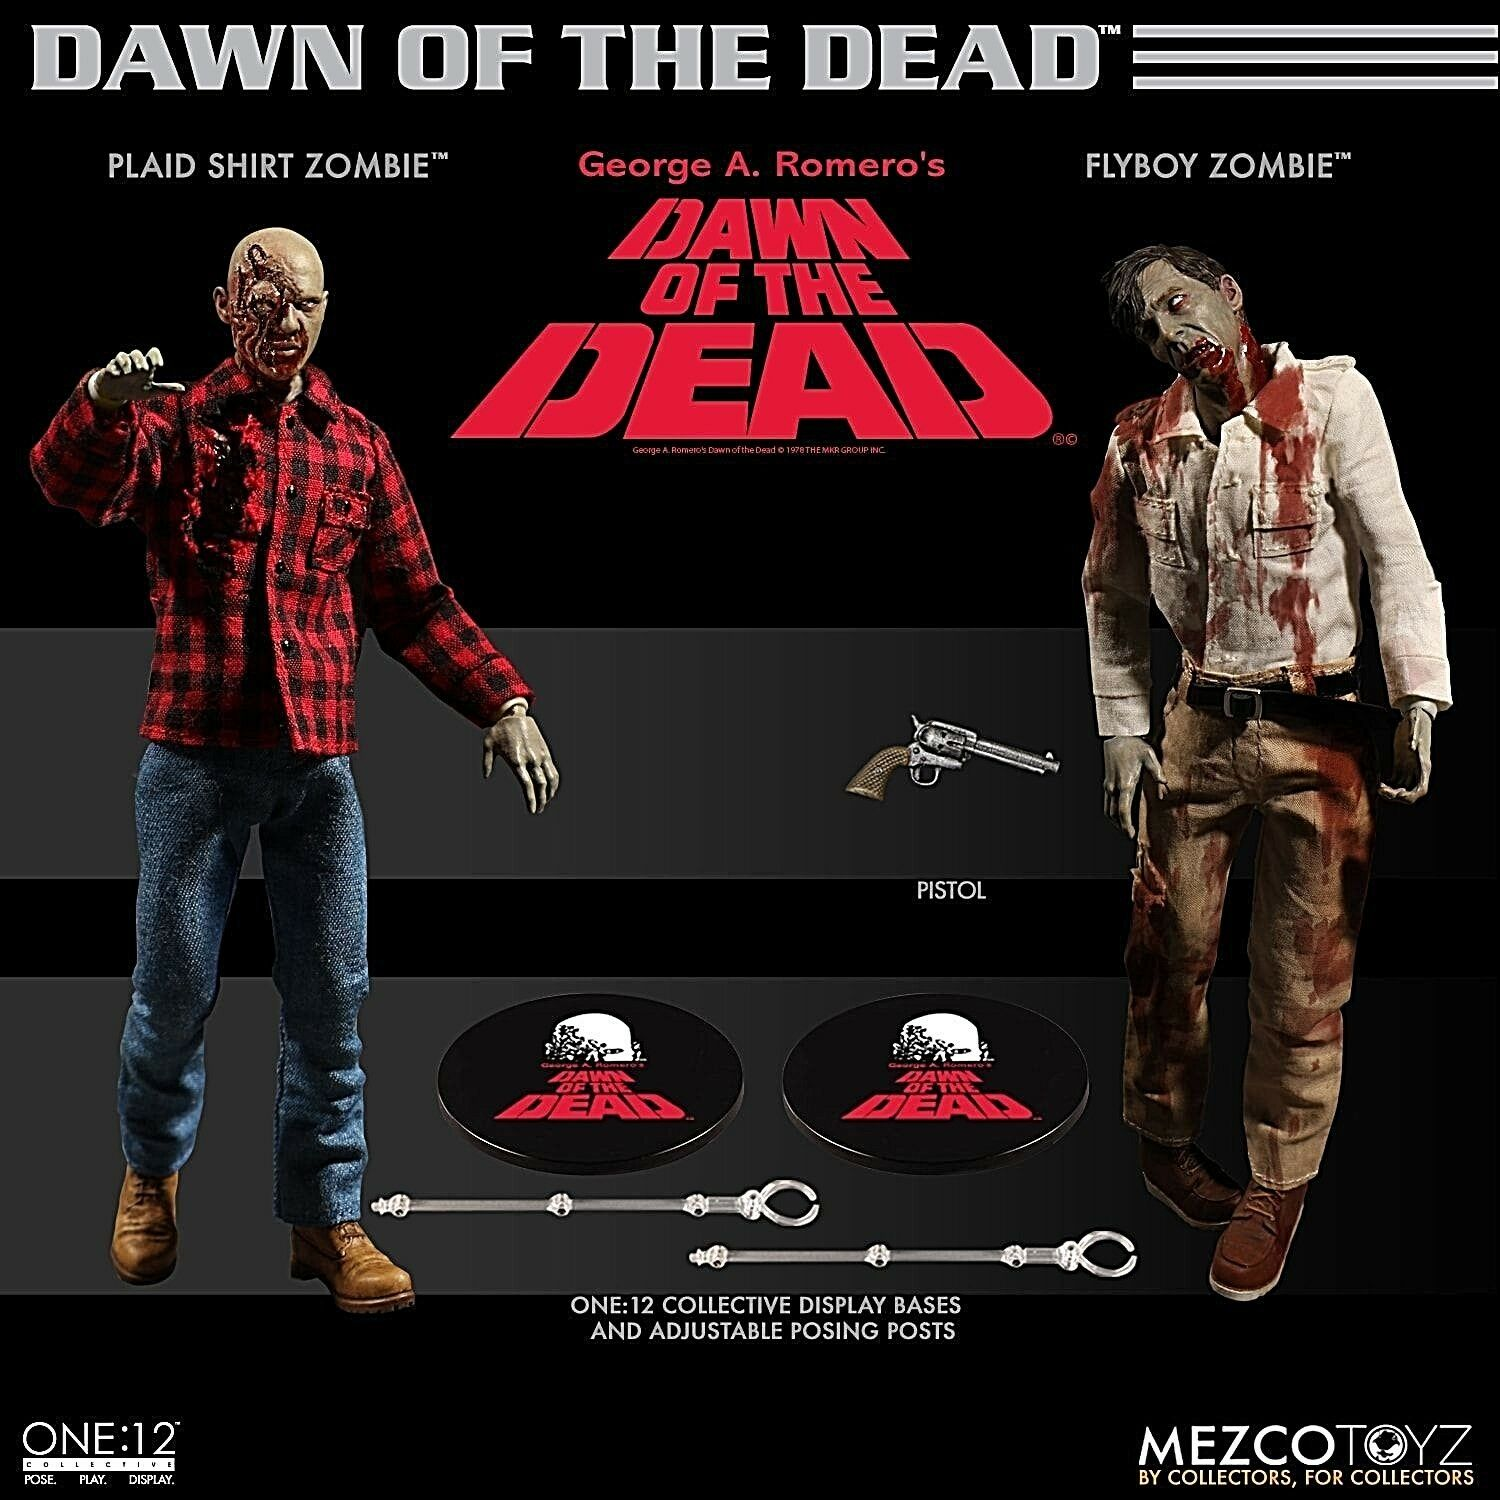 MEZCO ONE 12 COLLECTIVE DAWN OF THE DEAD BOX SET